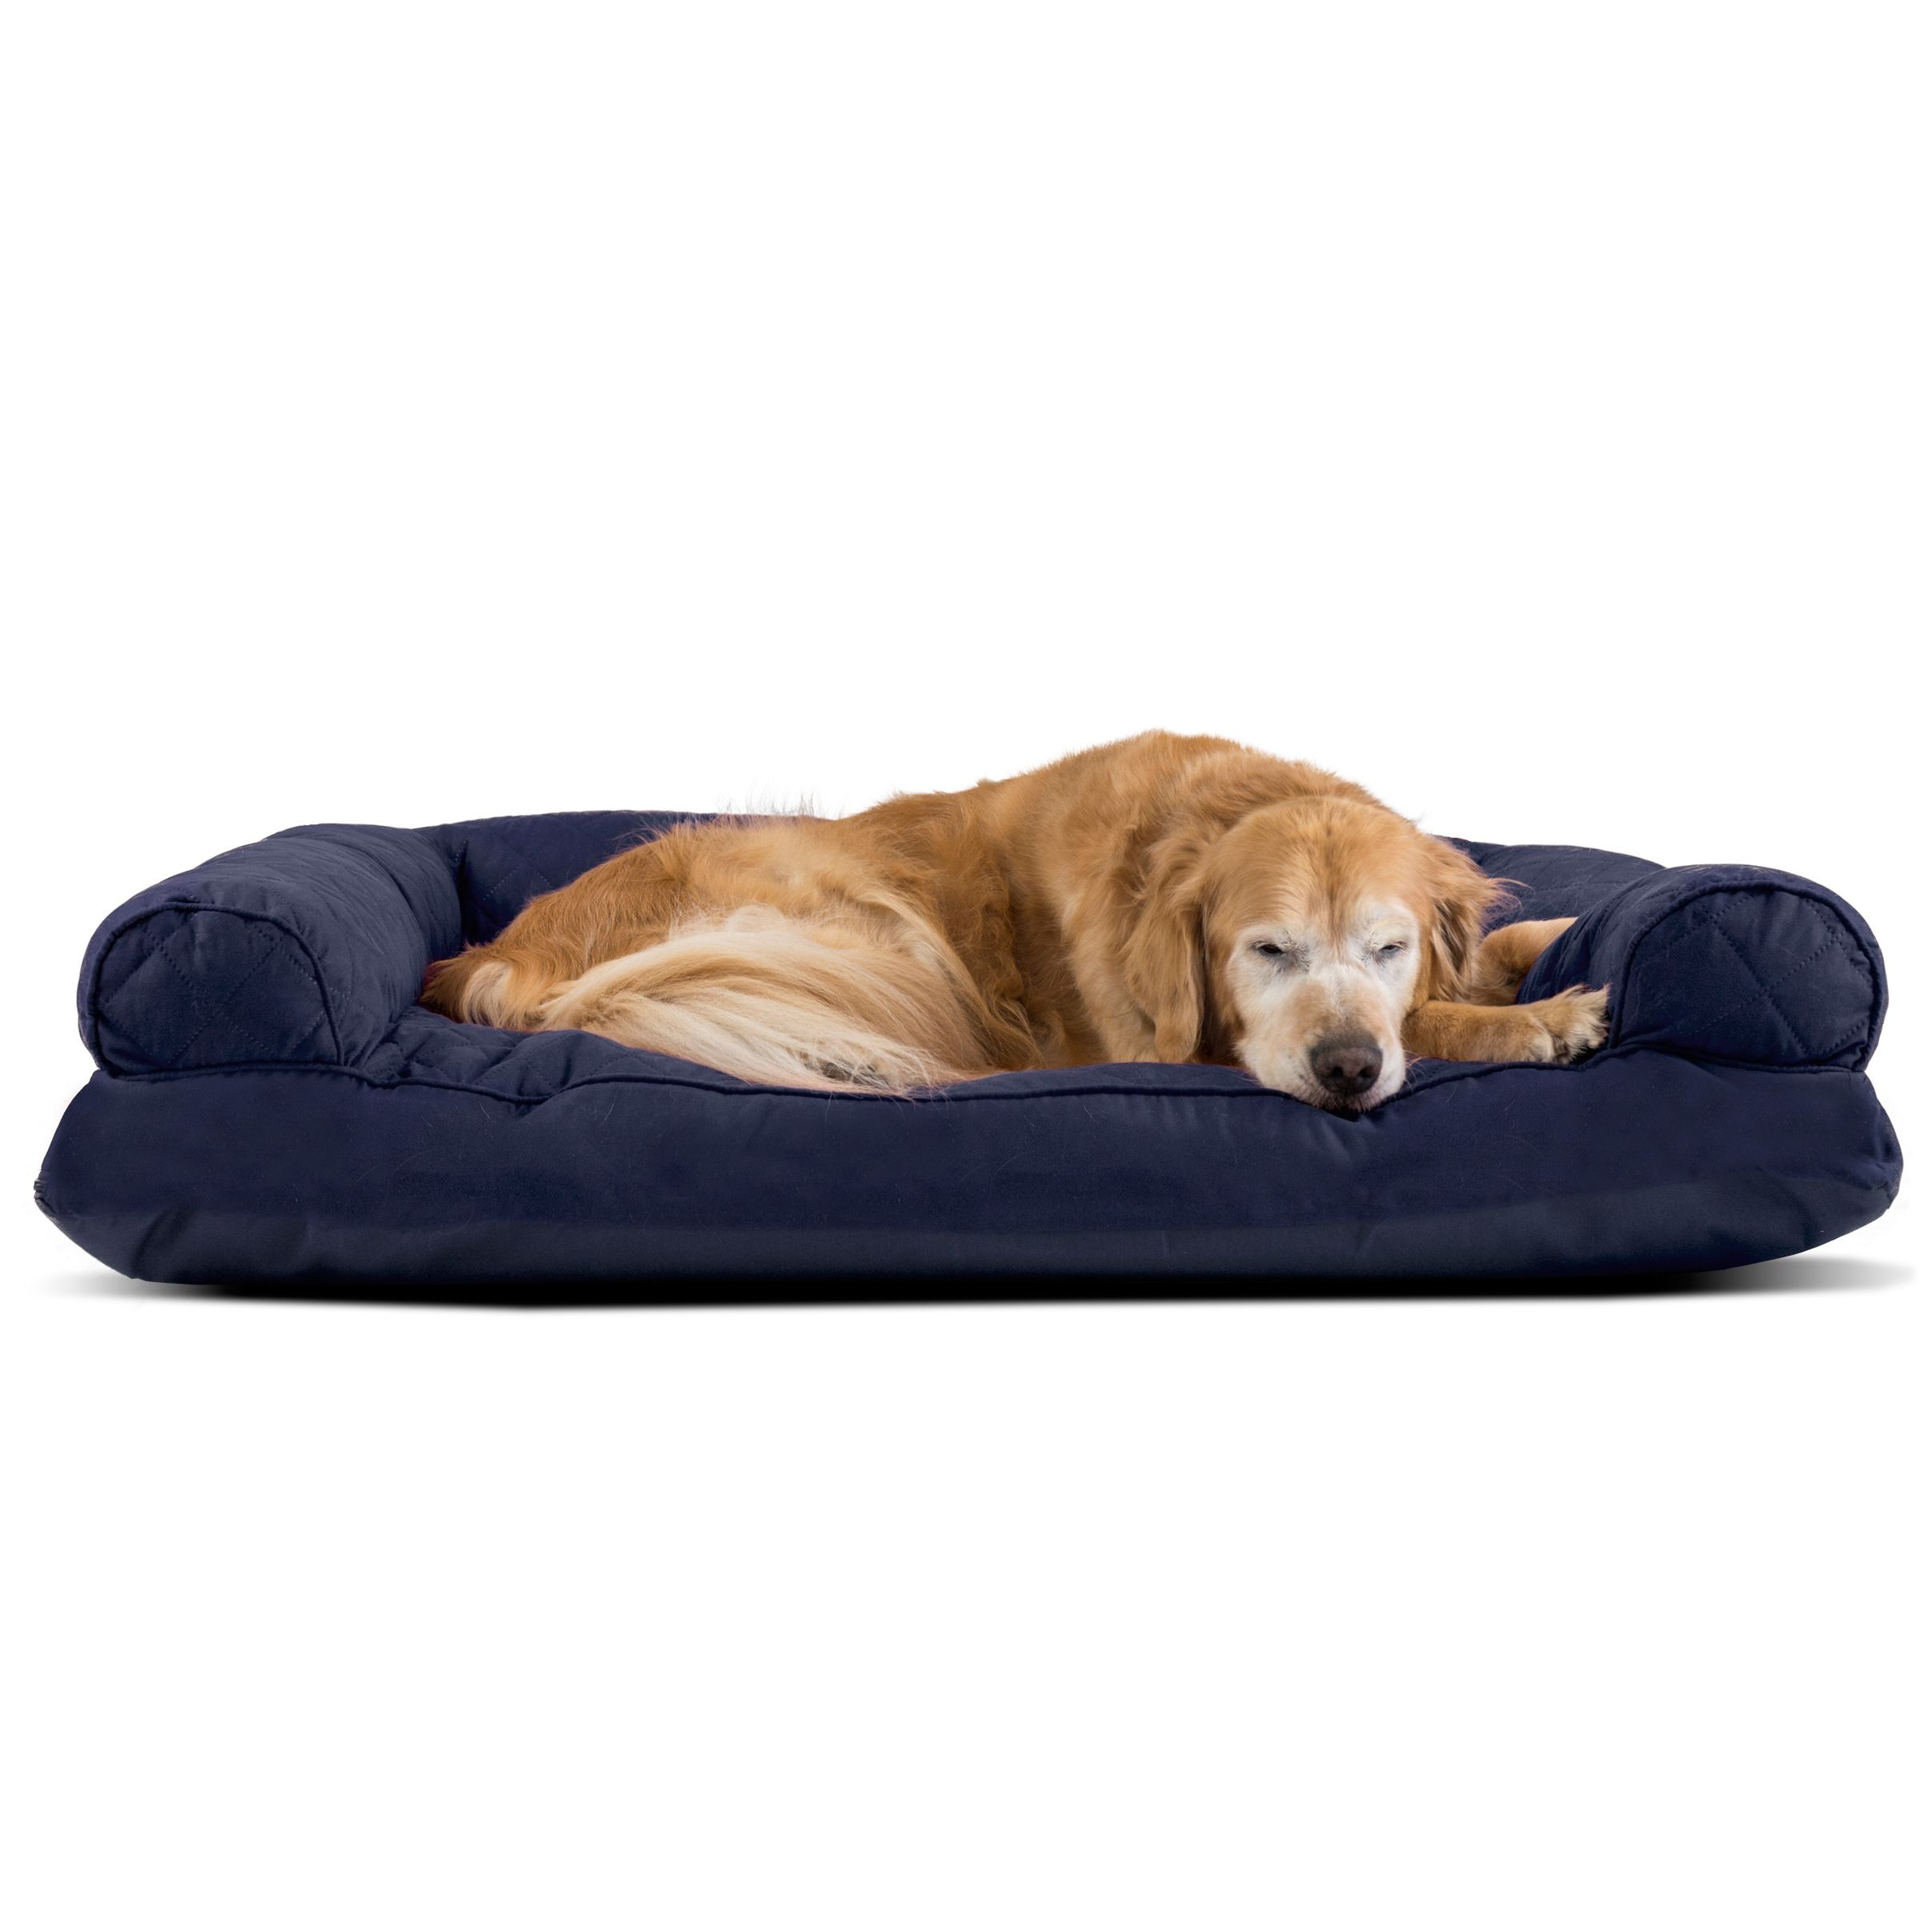 Amazing Furhaven Polycanvas Quilted Pillow Sofa Dog Pet Bed Blue Home Interior And Landscaping Palasignezvosmurscom